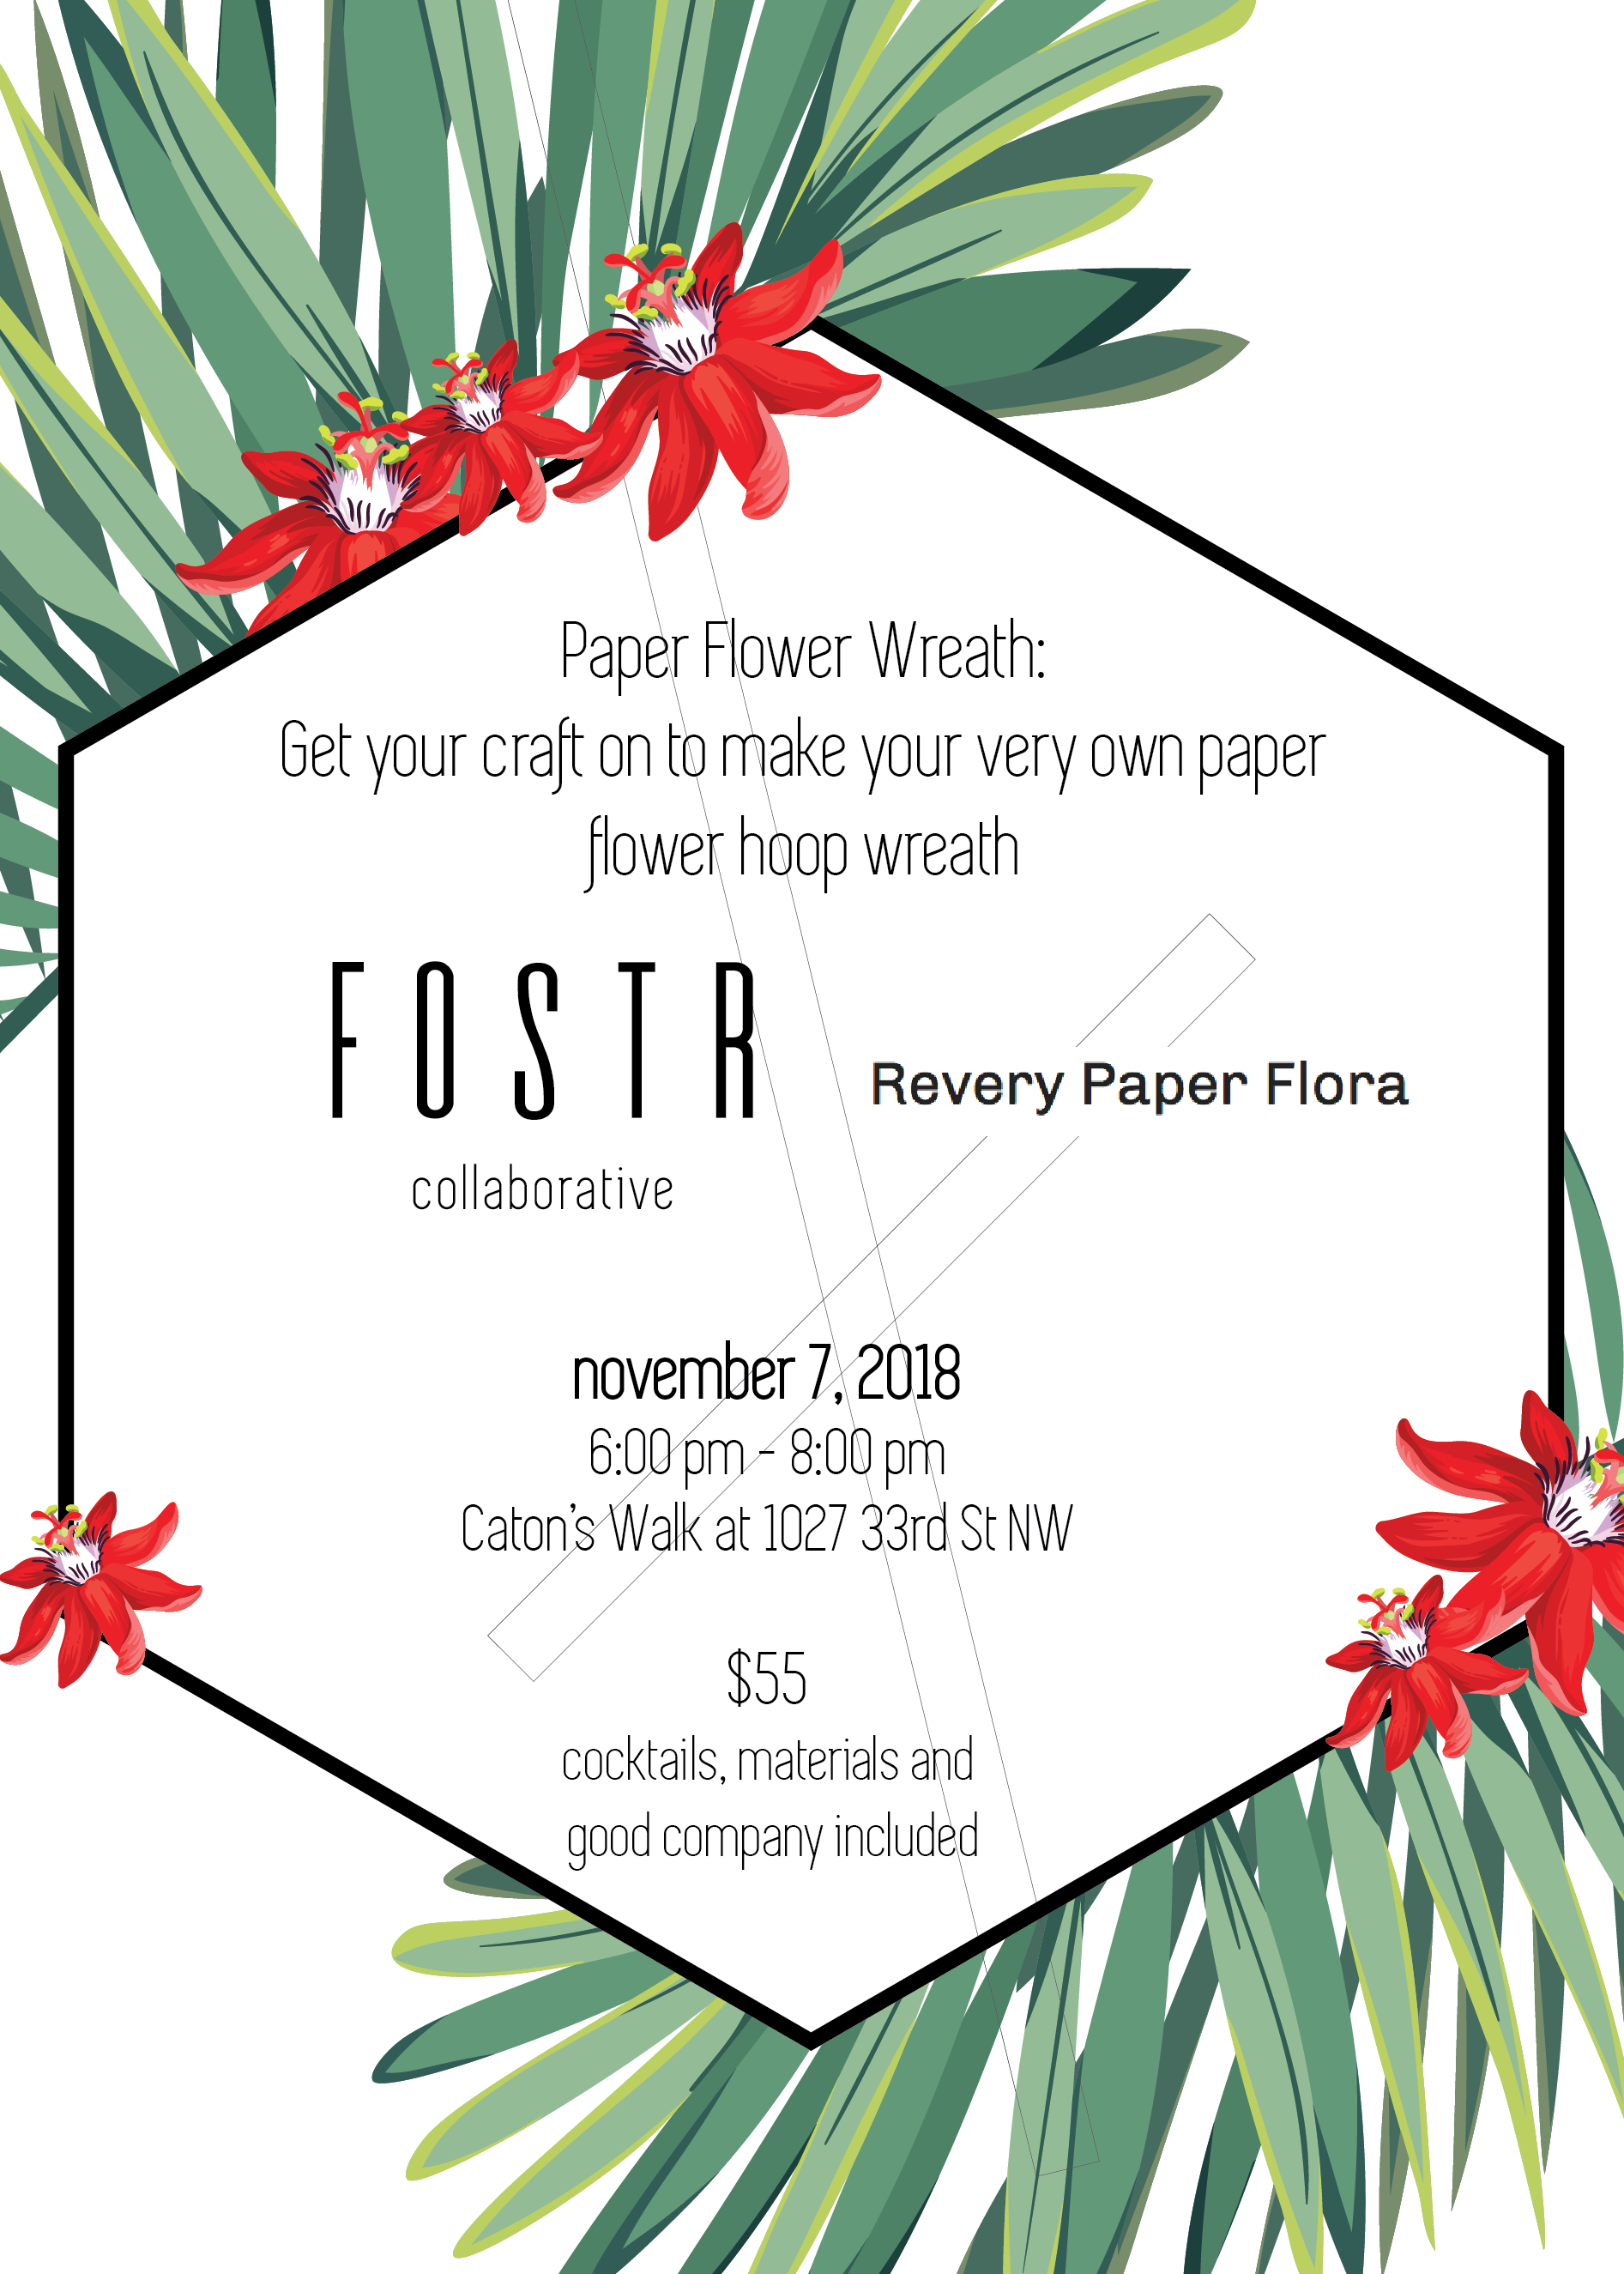 fostr_workshop_emily 20181107-01.png